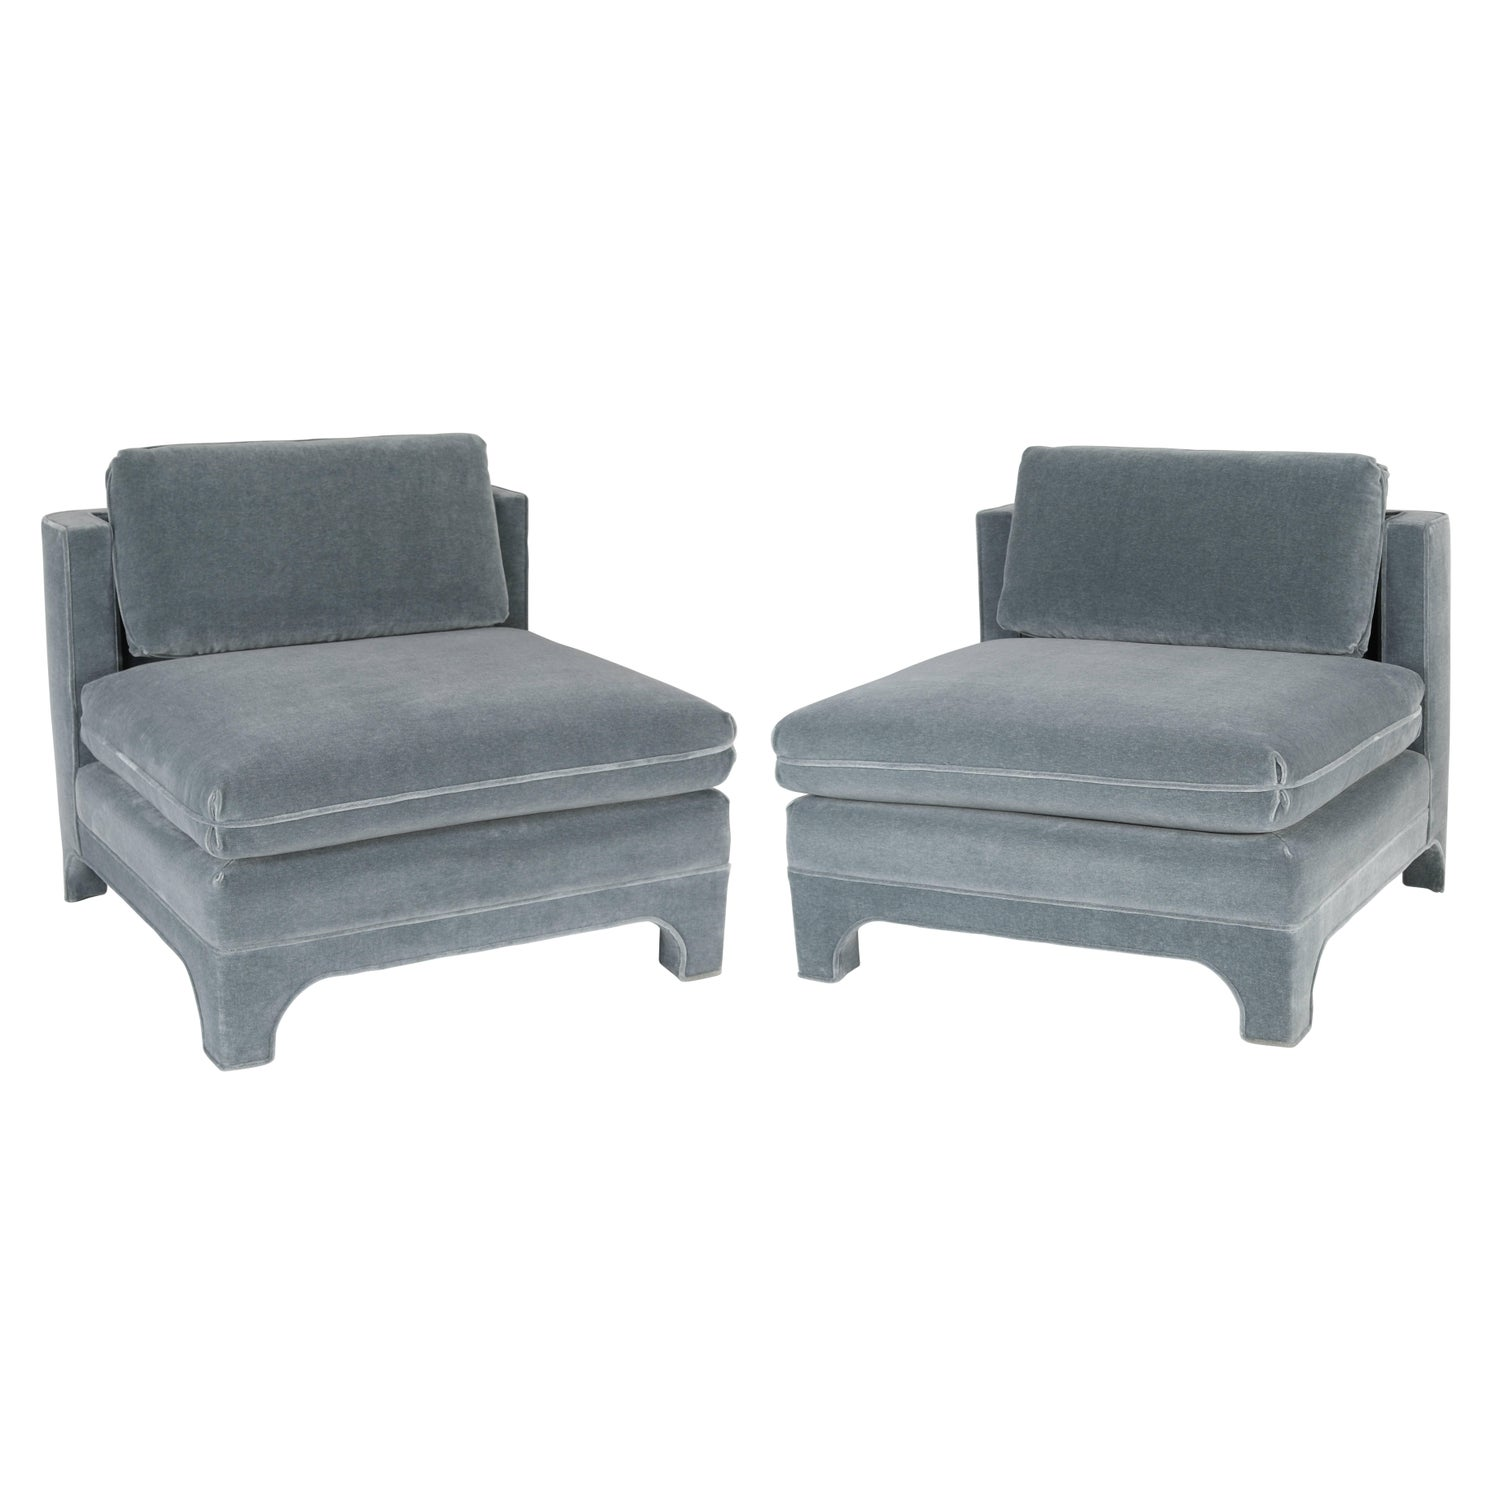 Interior Crafts Furniture: Chairs, Sofas, Storage Cabinets & More ...